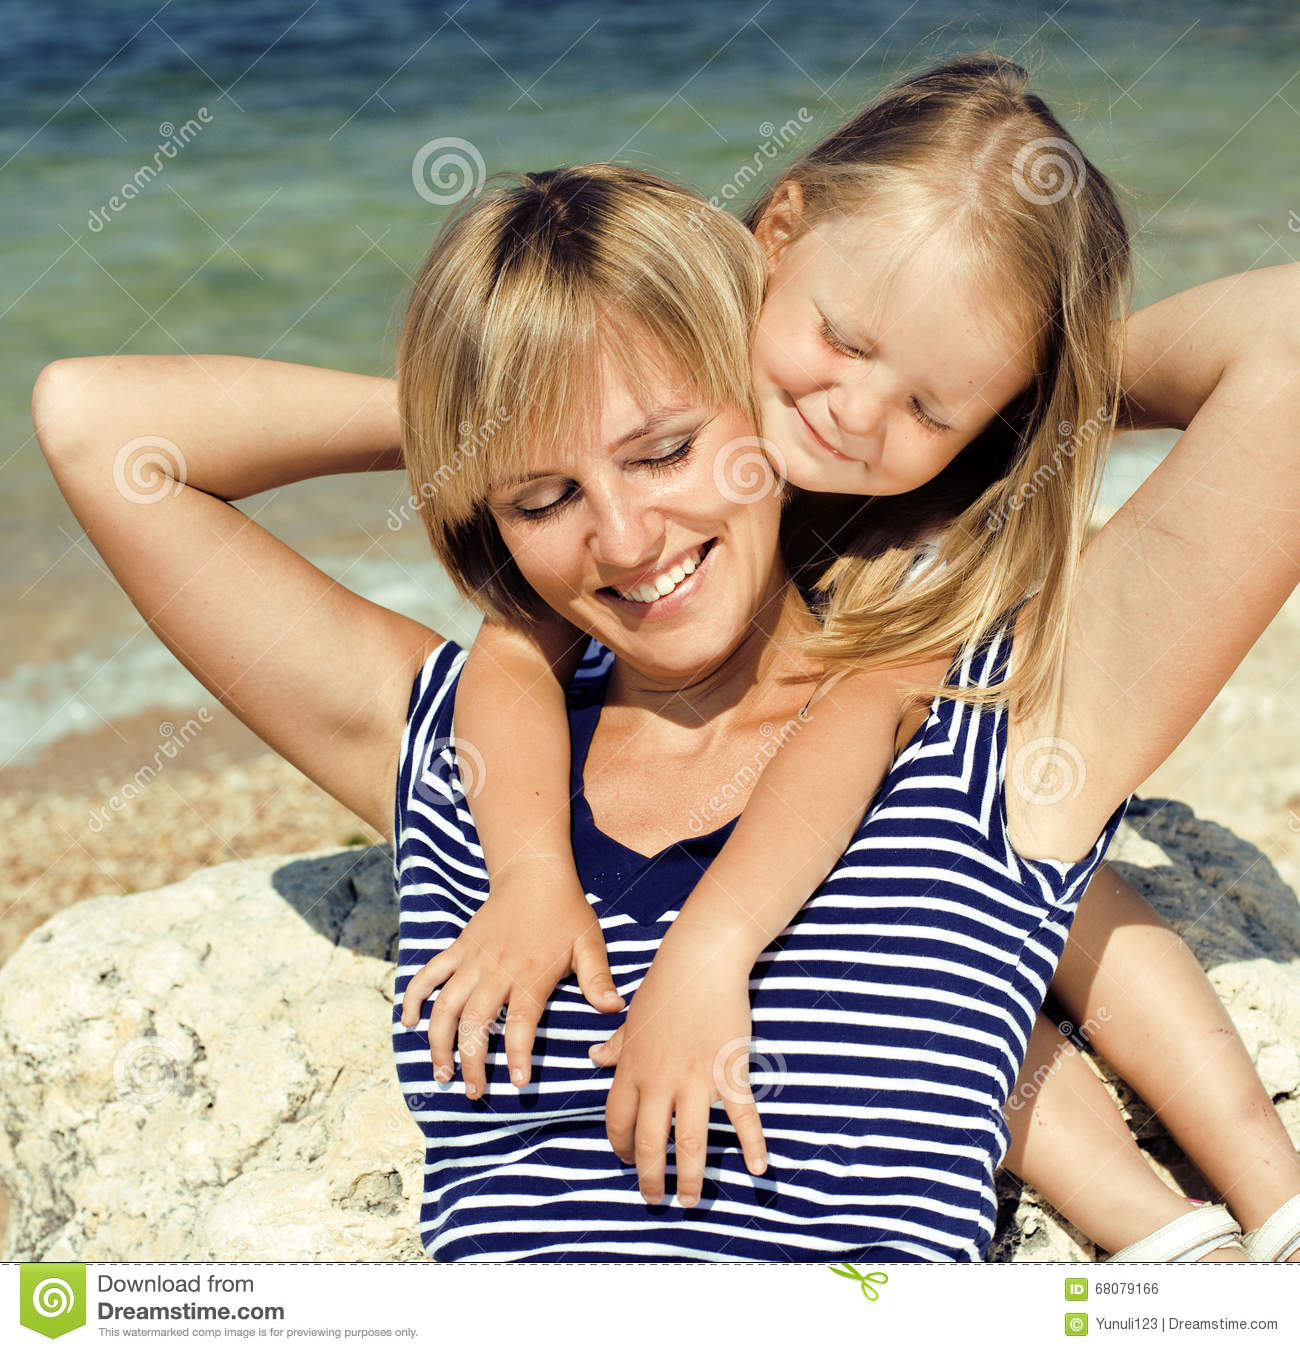 La m re avec la fille en mer a co t ensemble vraie famille heureuse photo stock image 68079166 - Ensemble mere fille ...